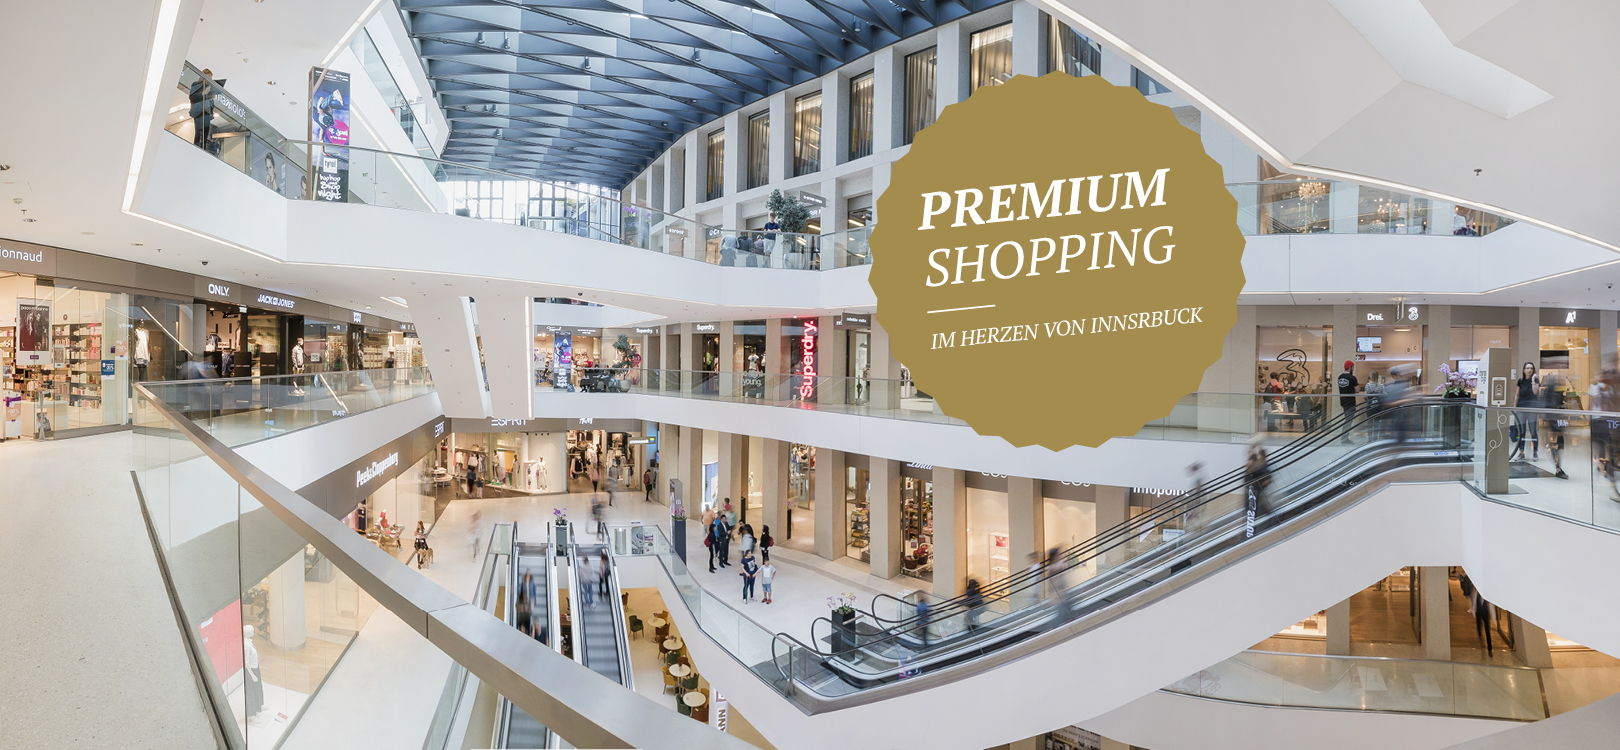 Premium Shopping in über 50 Shops